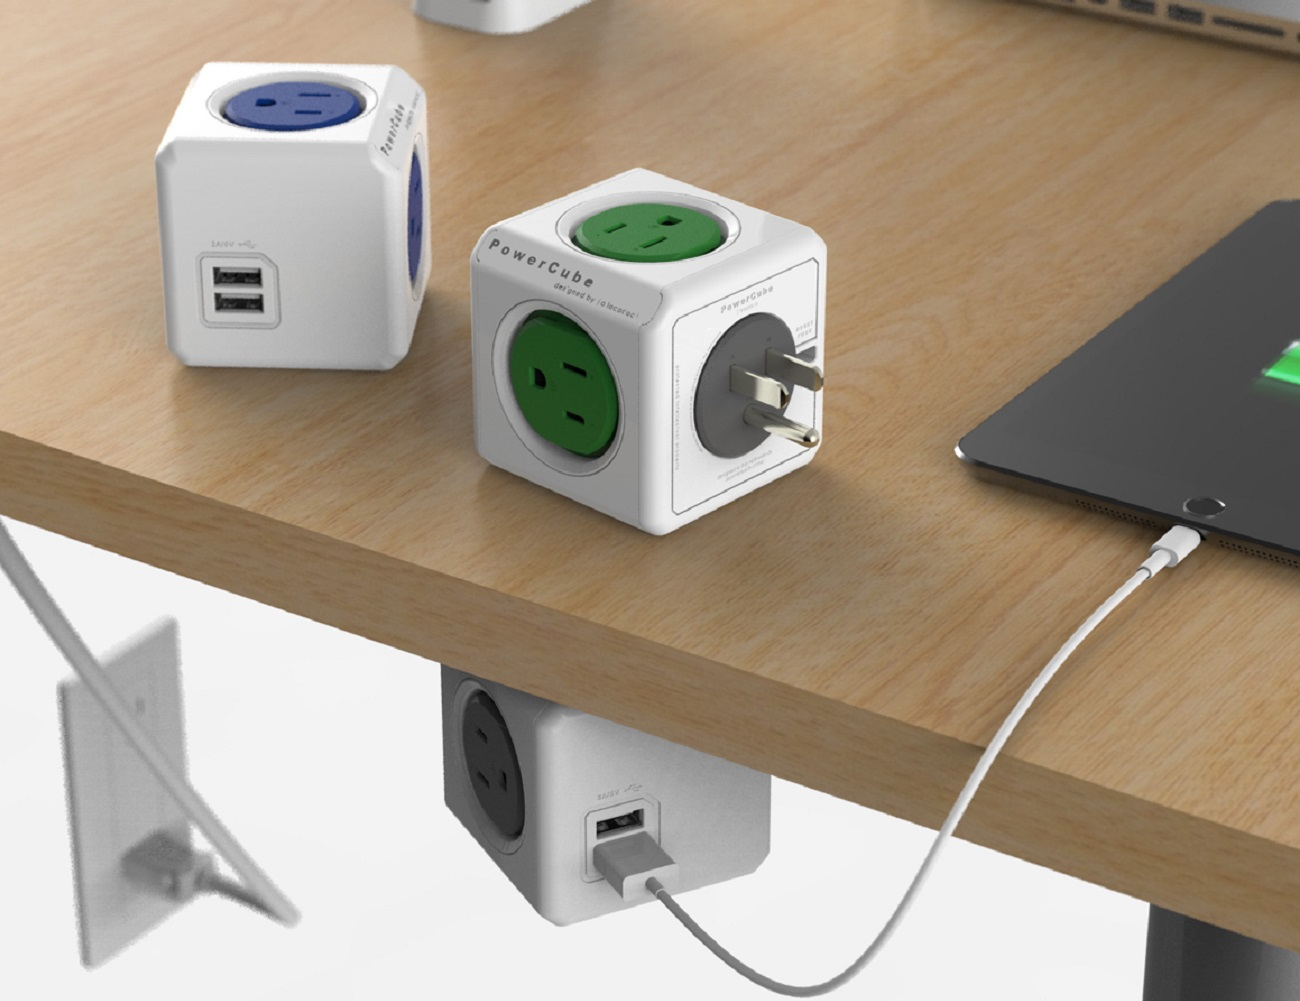 PowerCube Extended USB, Electric Outlet Adapter 5ft Extension Cord Power Strip